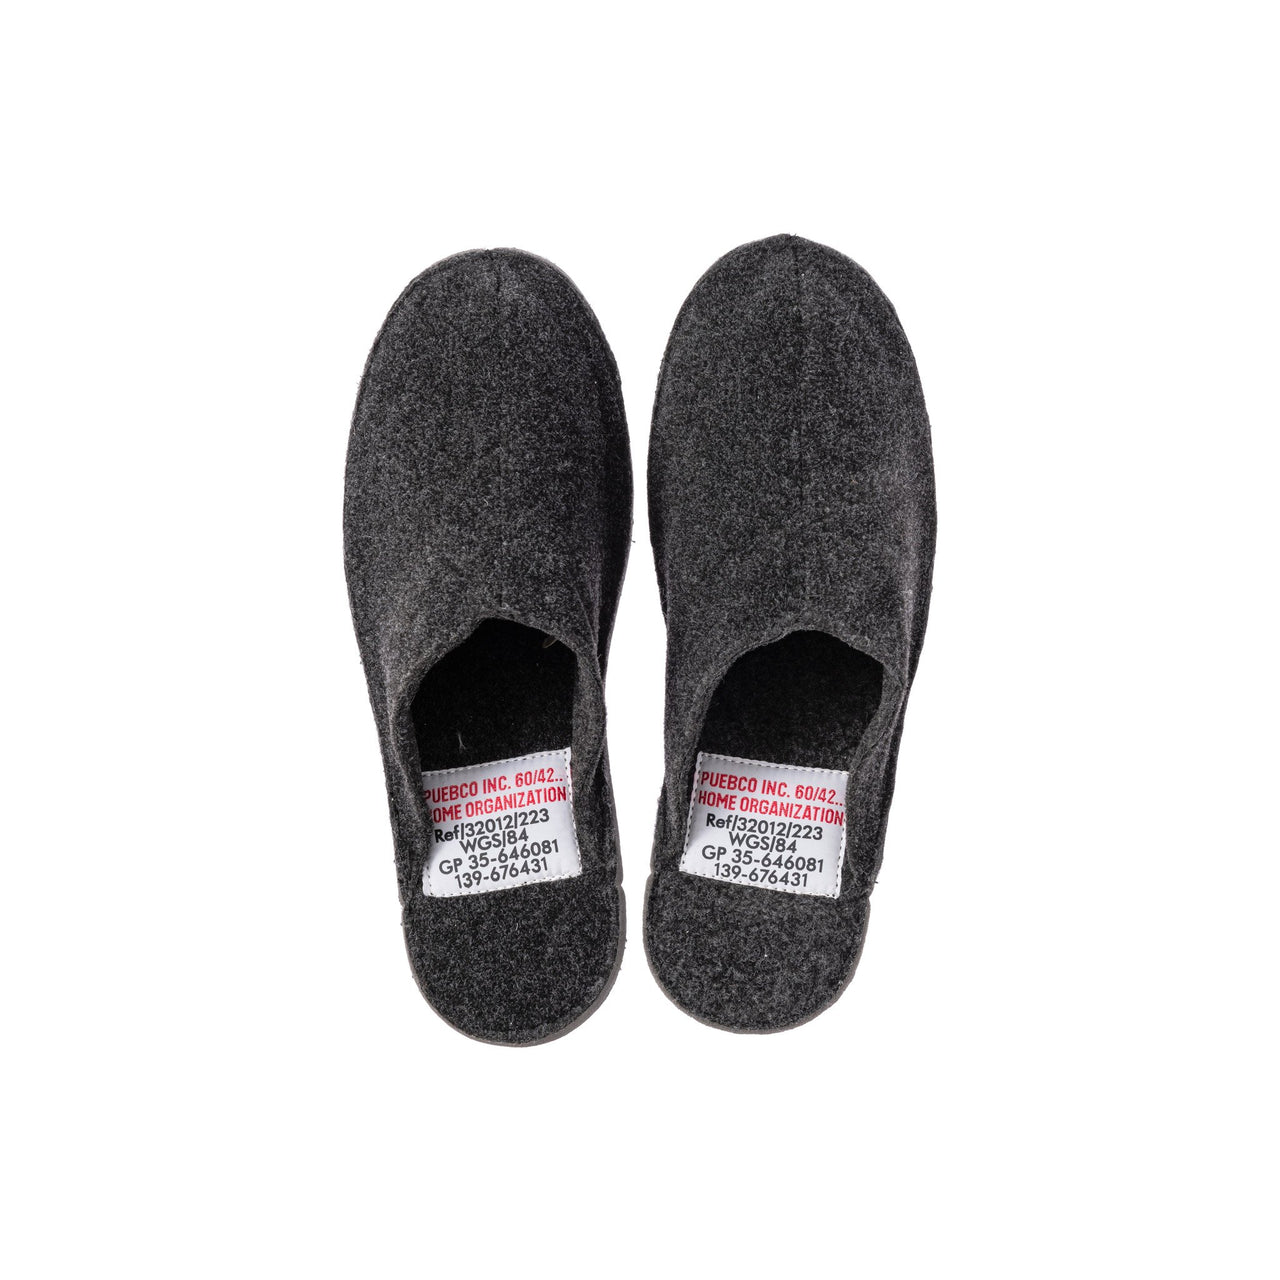 Slippers - Large/Dark Gray